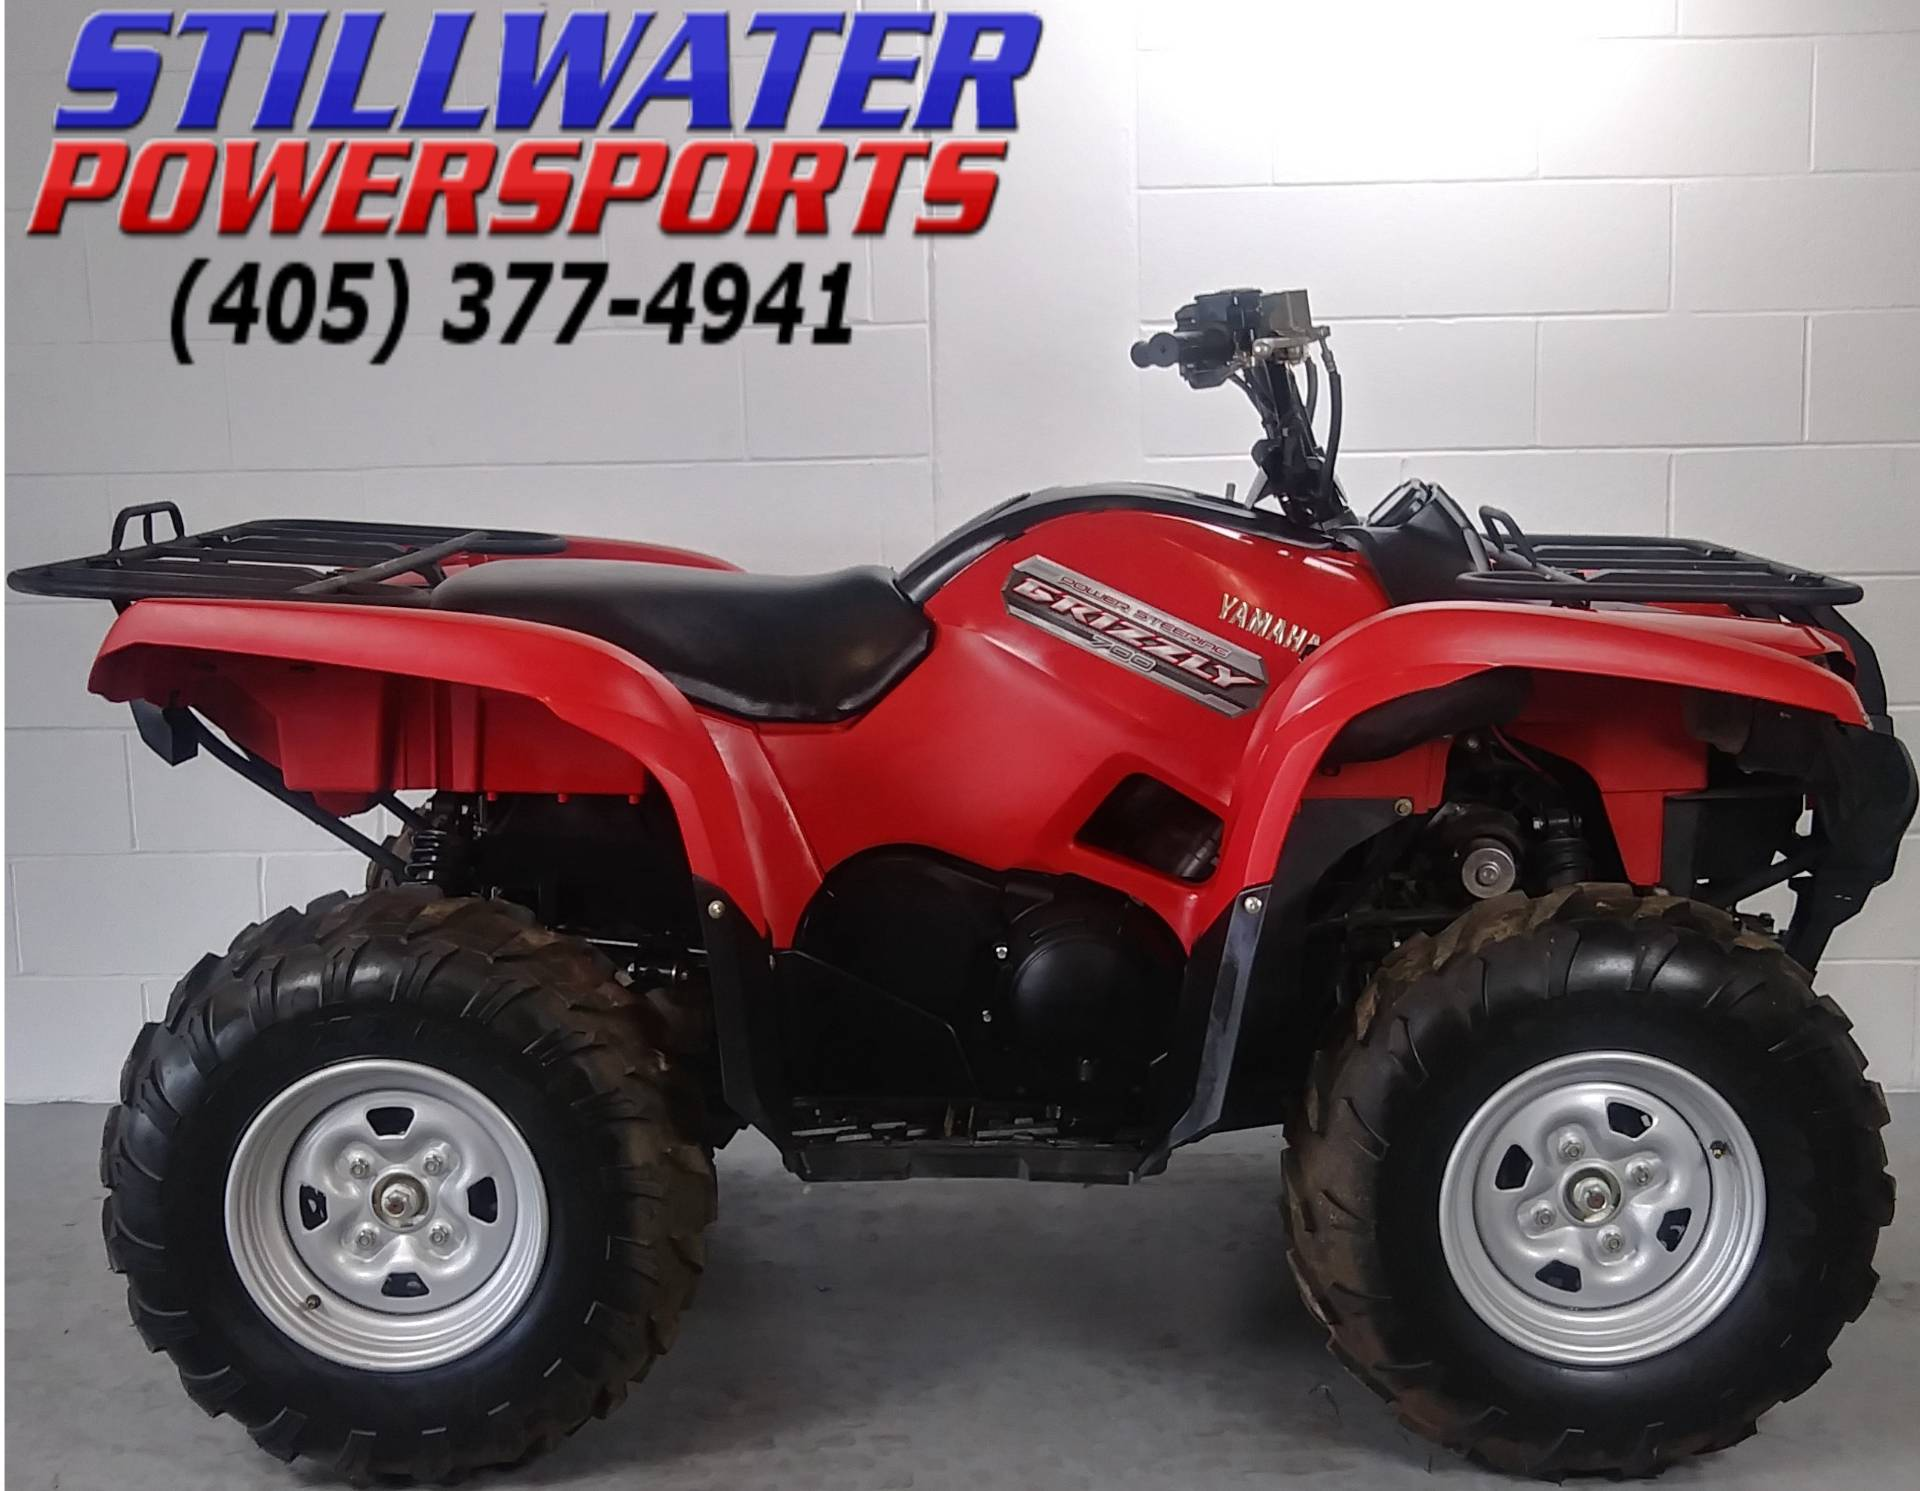 hight resolution of 2013 yamaha grizzly 700 fi auto 4x4 eps in stillwater oklahoma photo 1